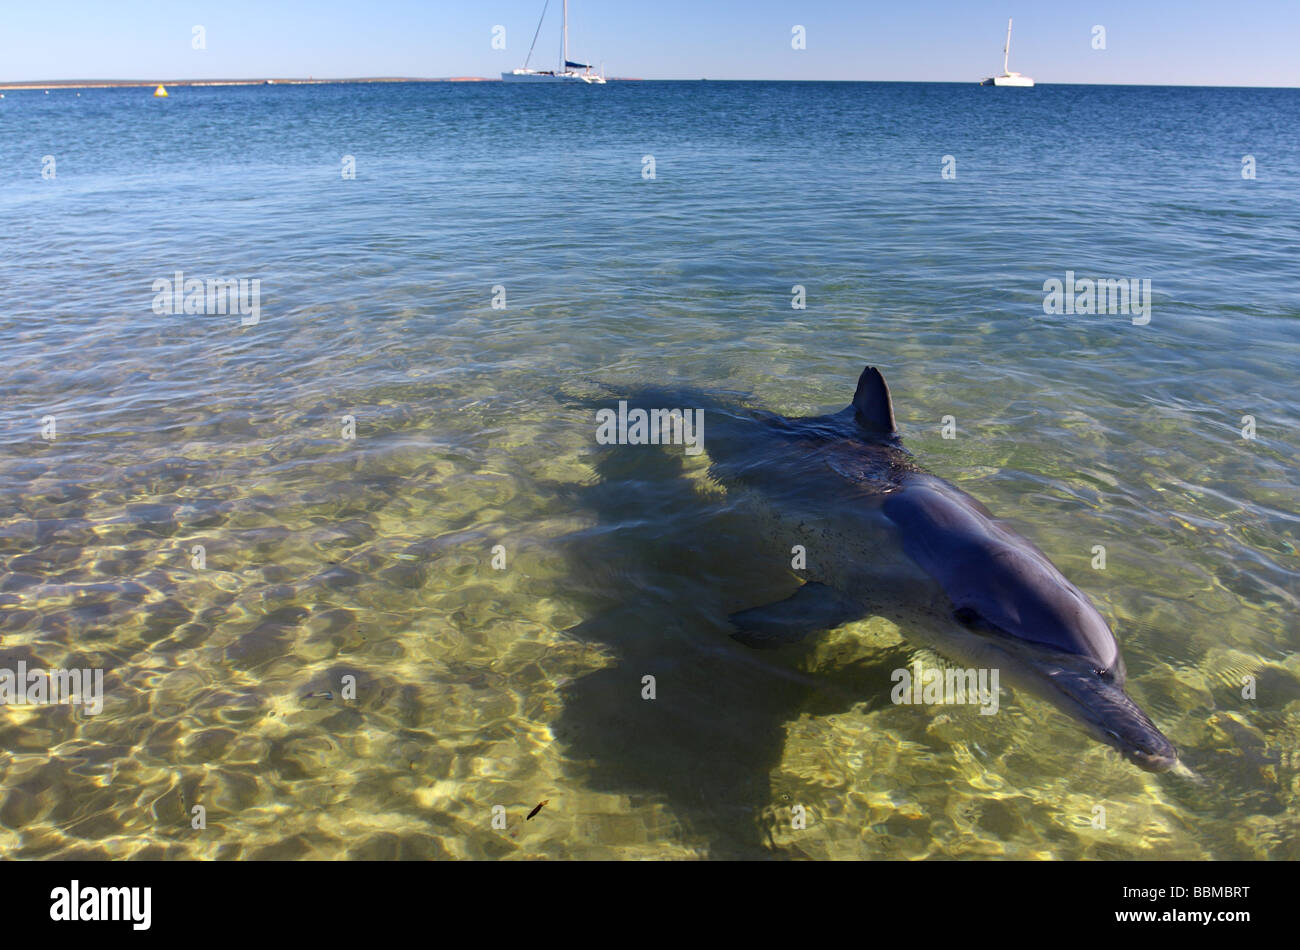 Indo-Pacific Bottlenose Dolphin (Tursiops aduncus)  in shallow water, Monkey Mia, Shark Bay, Western Australia - Stock Image